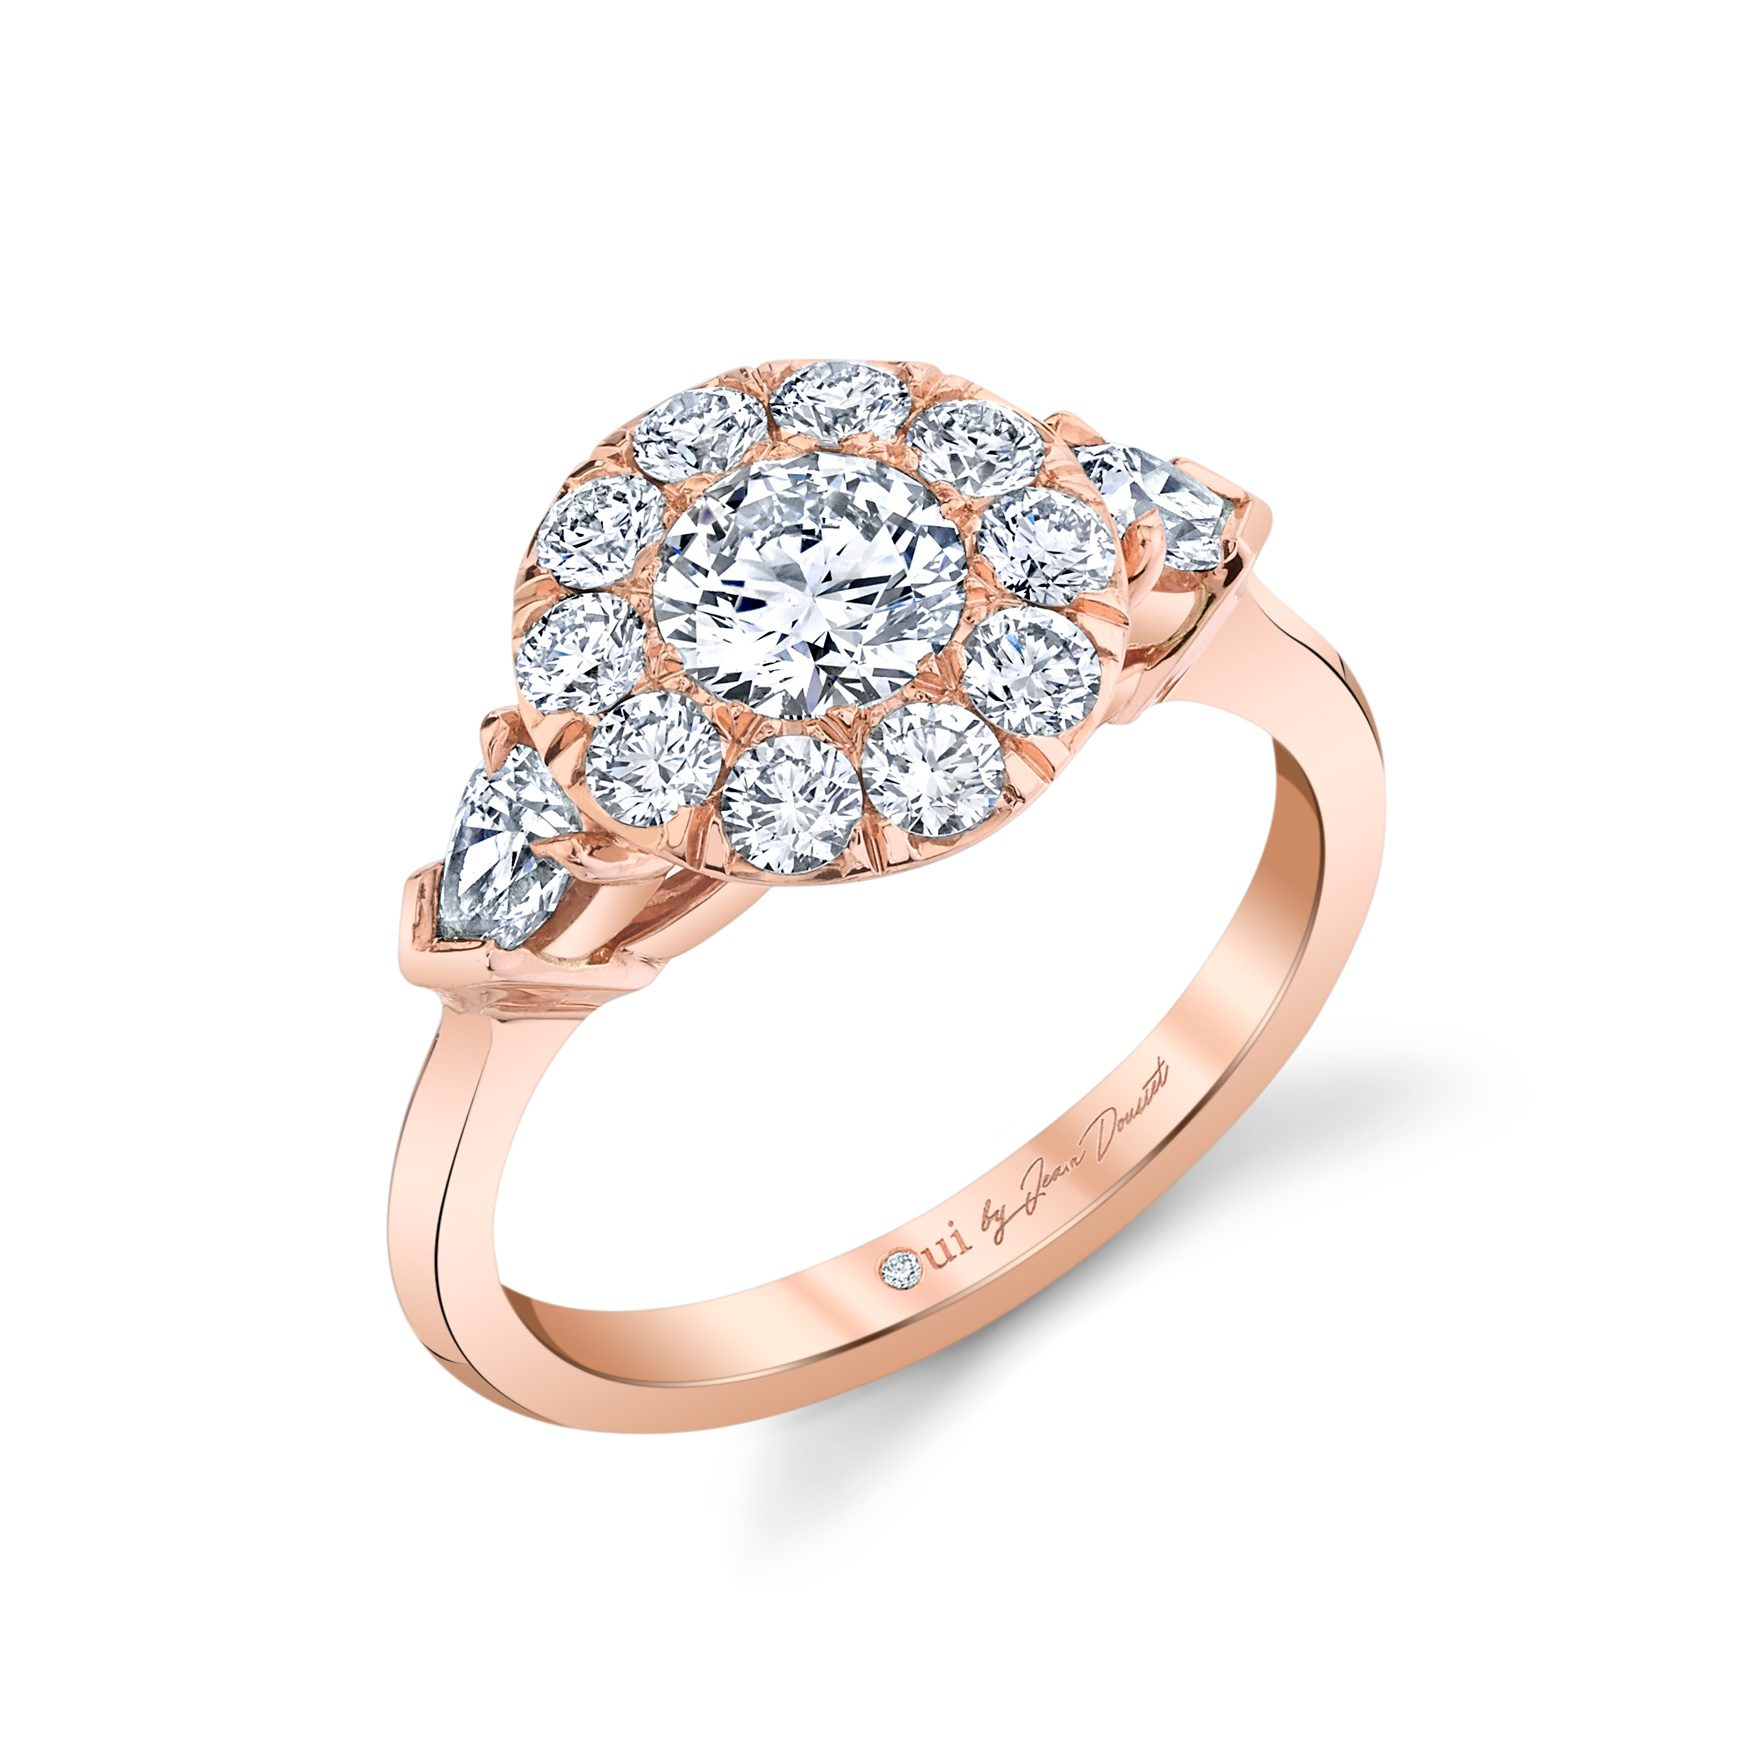 Clementine Round Brilliant Seamless Solitaire® Three Stone Engagement Ring with pear-shaped diamond side stones in 18k Rose Gold Profile View by Oui by Jean Dousset